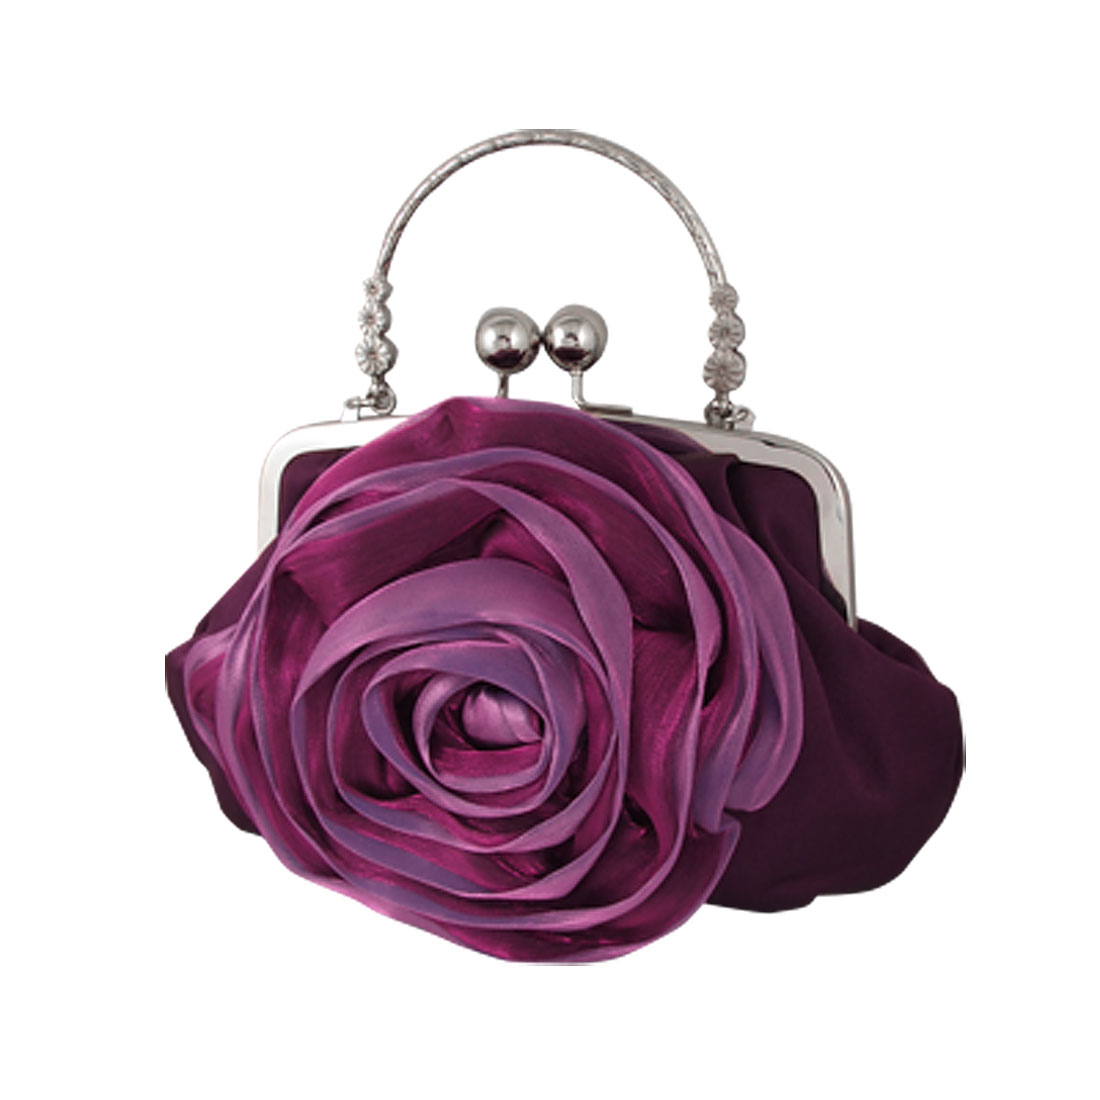 Kiss Lock Closure Flower Evening Clutch Bag Purple for Women